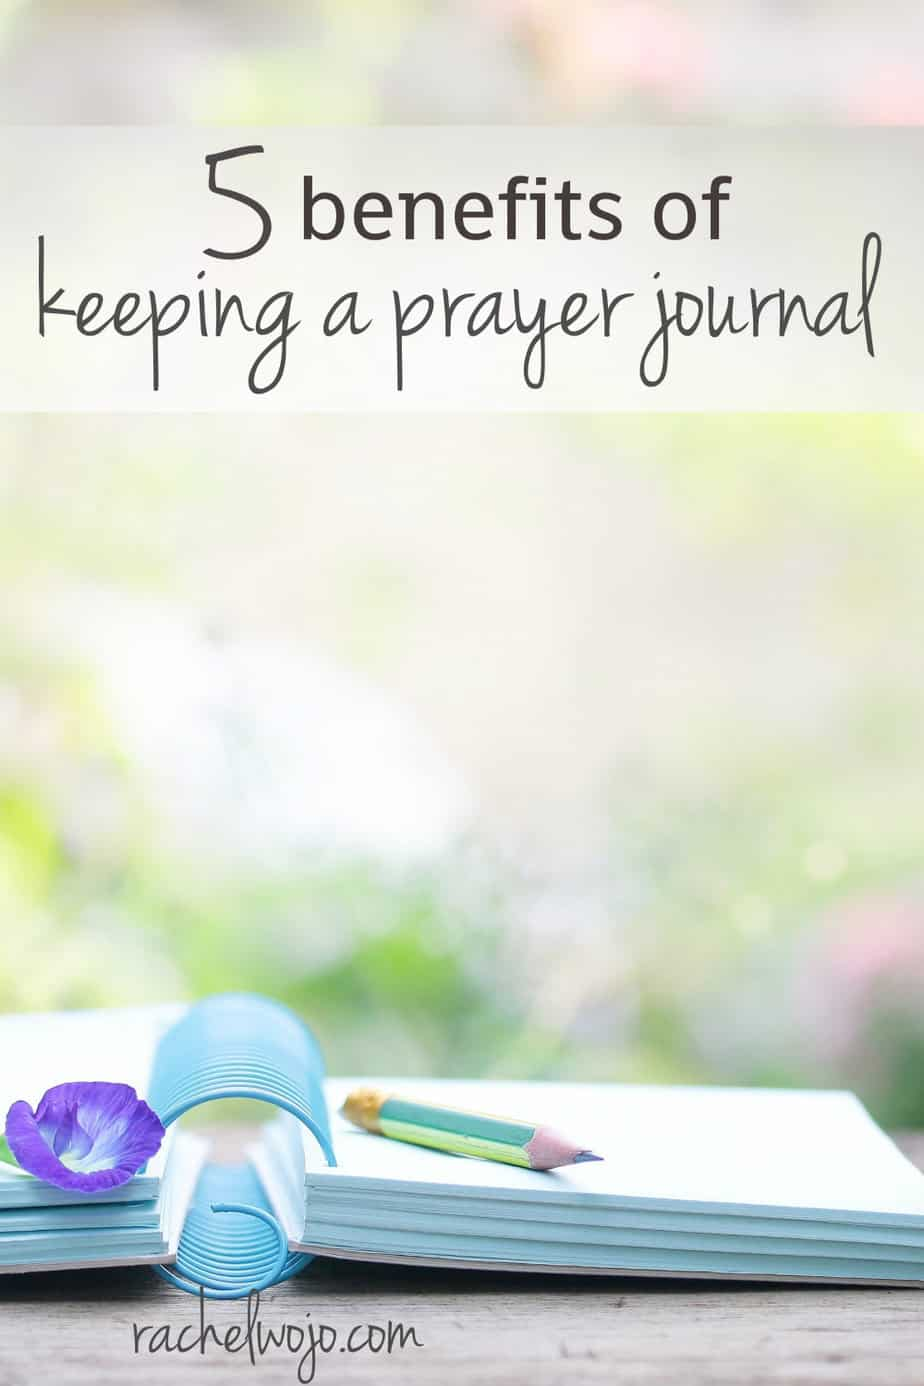 Benefits of Keeping a Prayer Journal